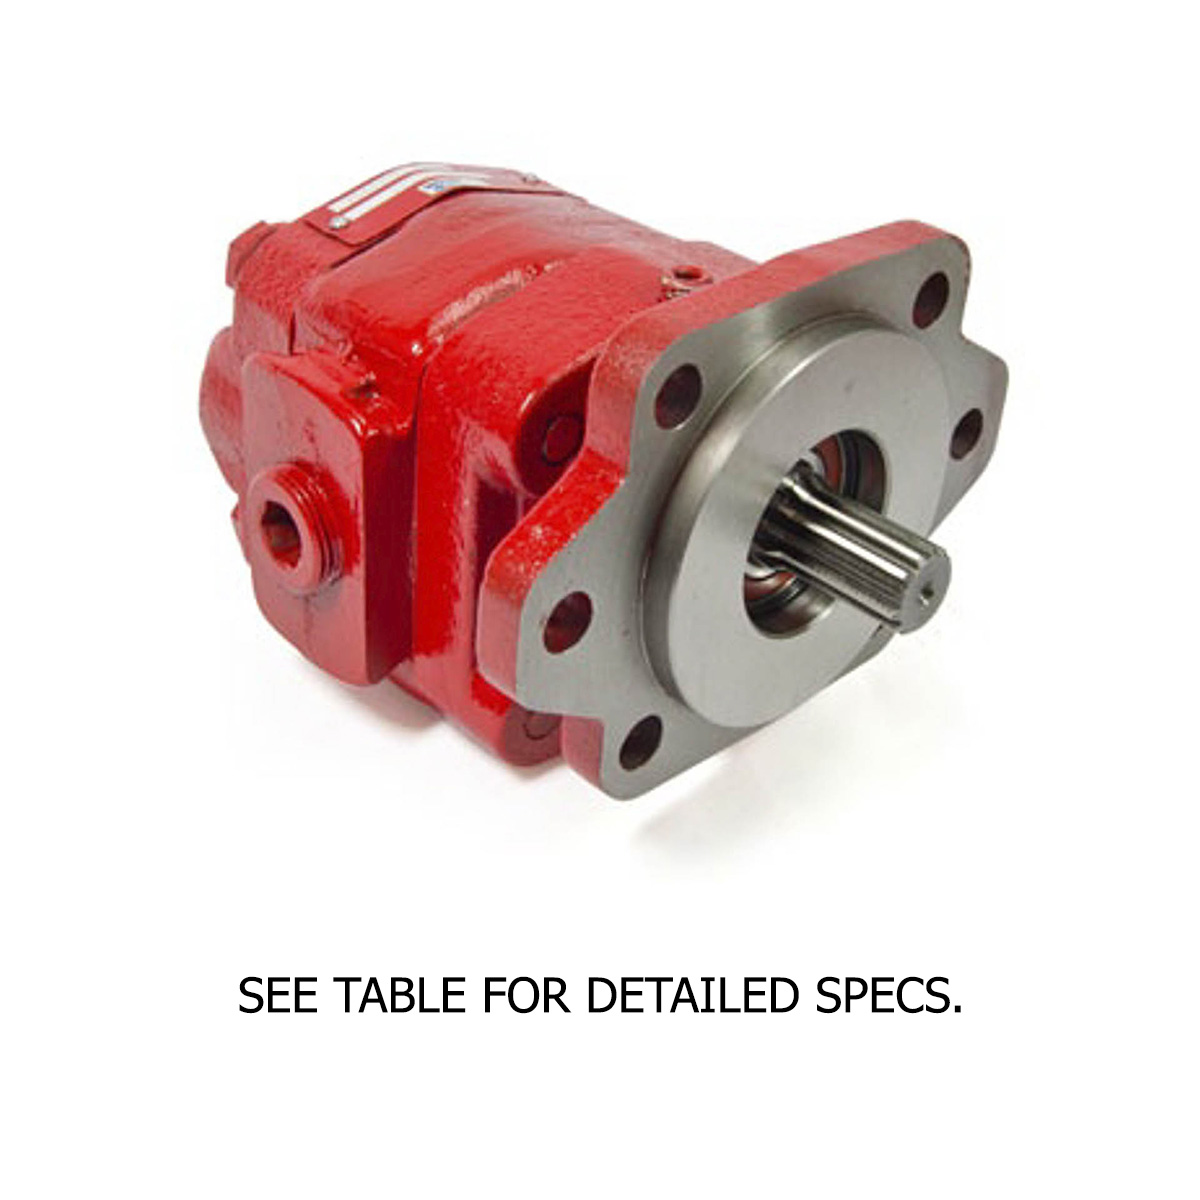 Buy mk20 hydraulic motor online at access truck parts for Hydraulic motors for sale